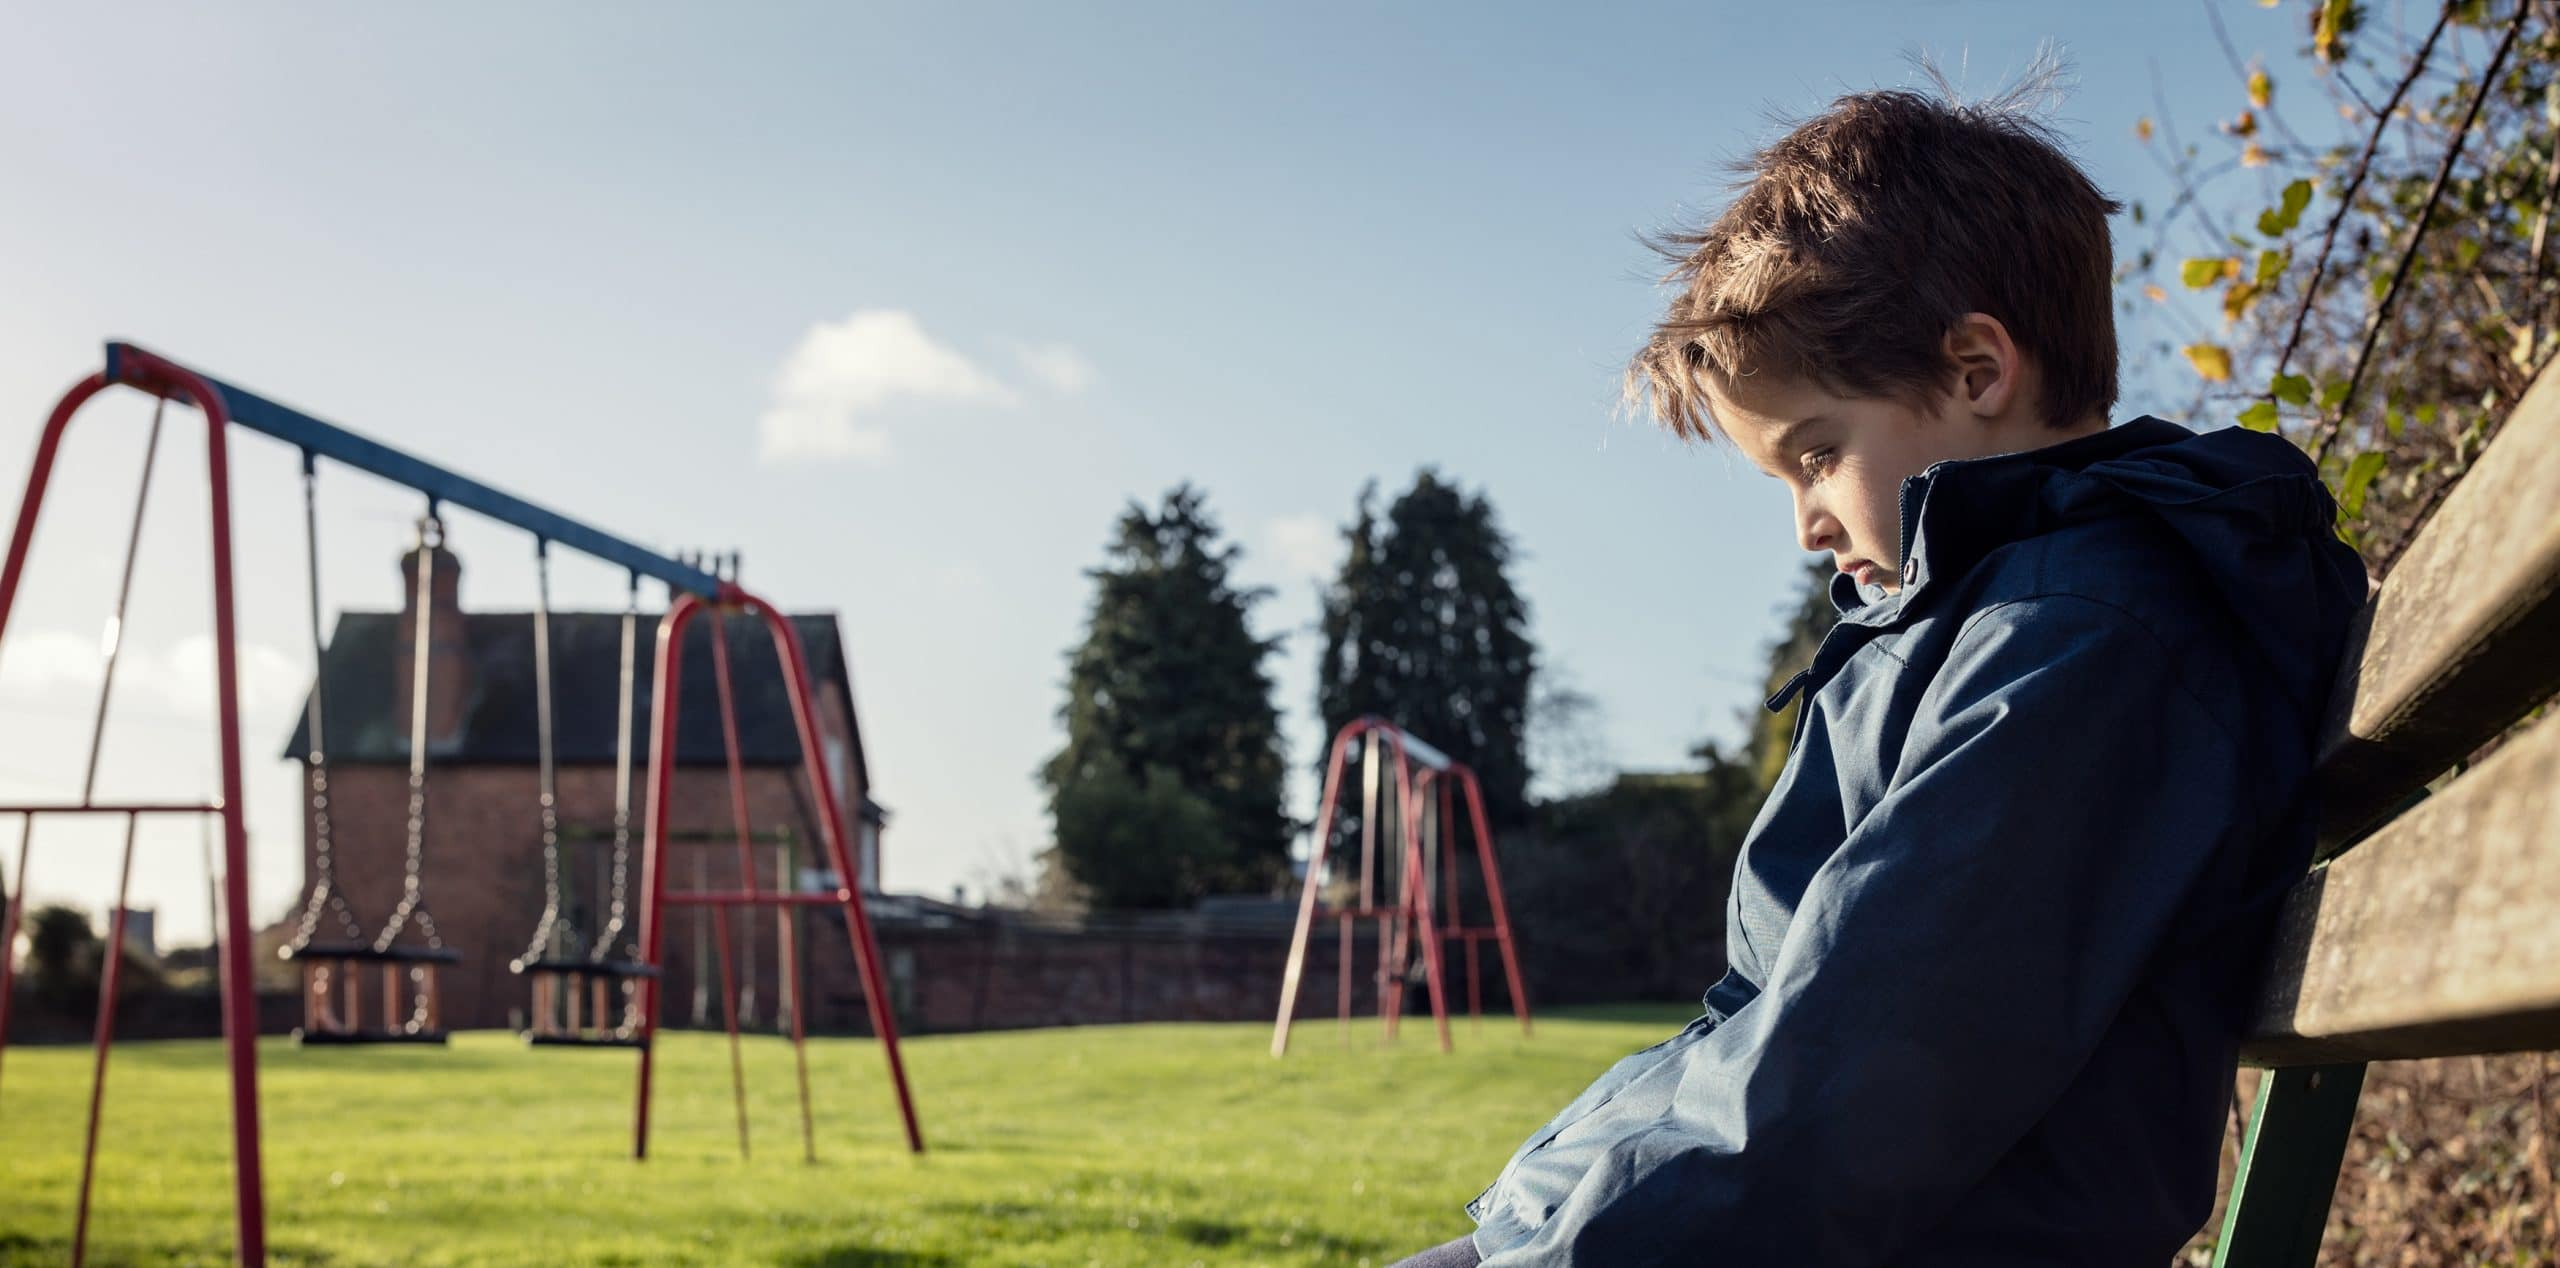 Thumbnail of Research Study: Drug Addiction Is Sending More Children To Foster Care